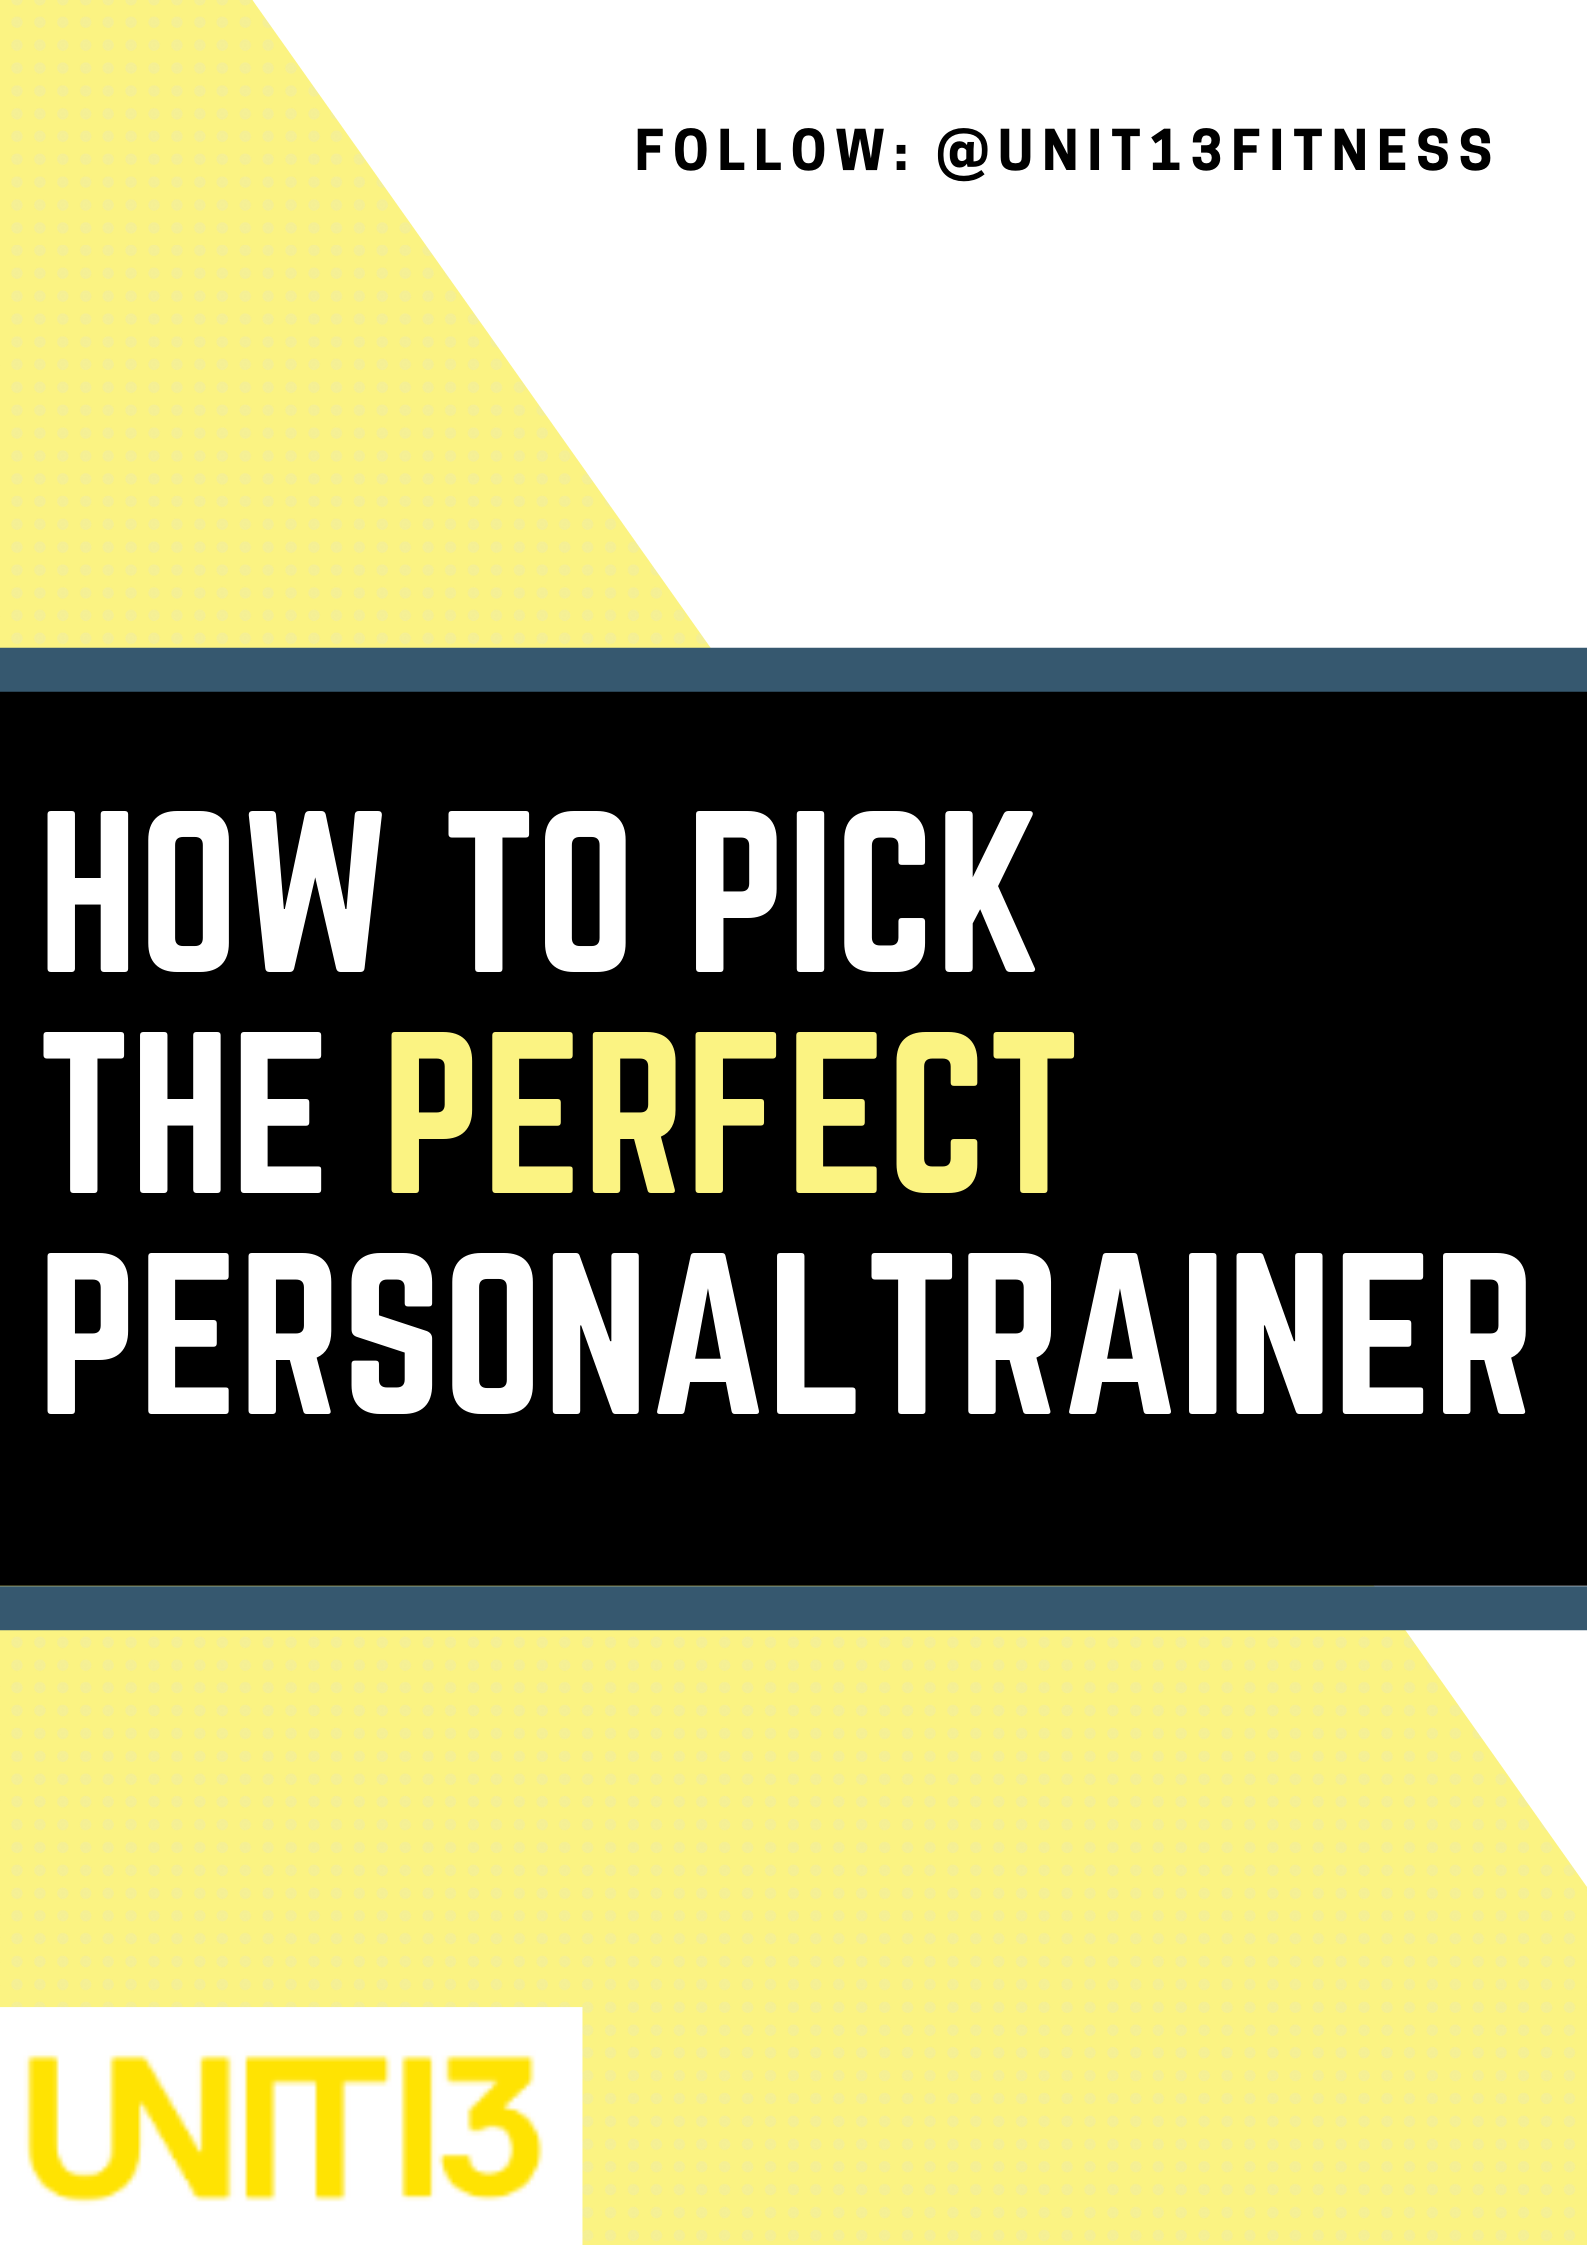 How to Pick A Personal Trainer Pin.png